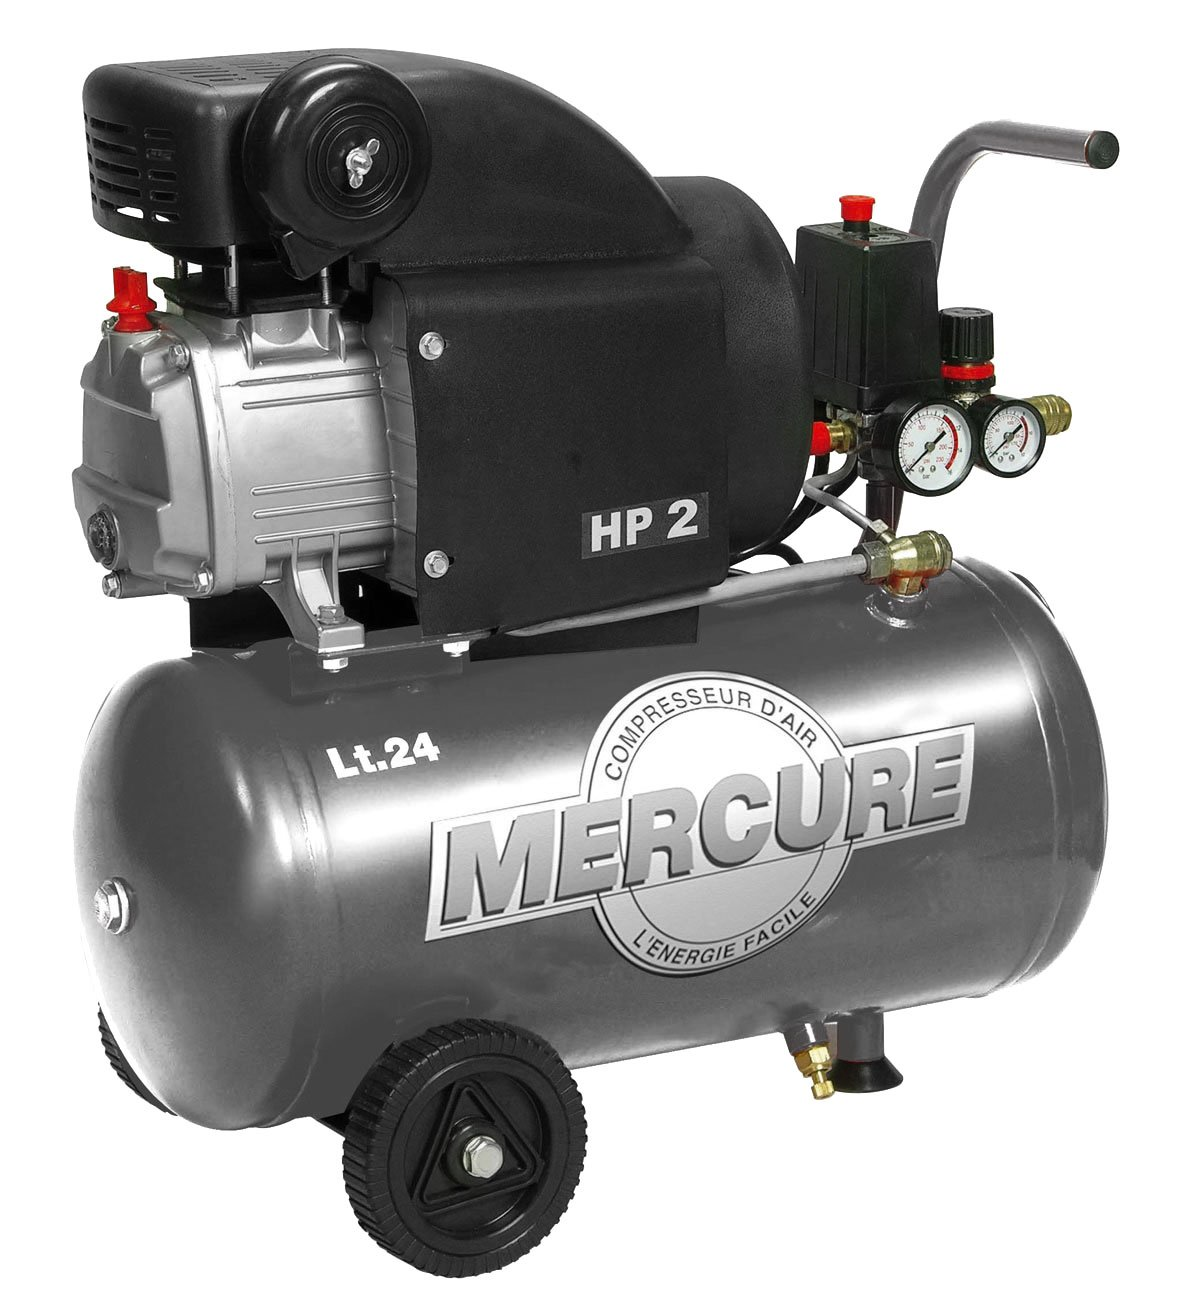 Mercure 425063 Compresseur 24 L 2 hp mercure Gris Mecafer